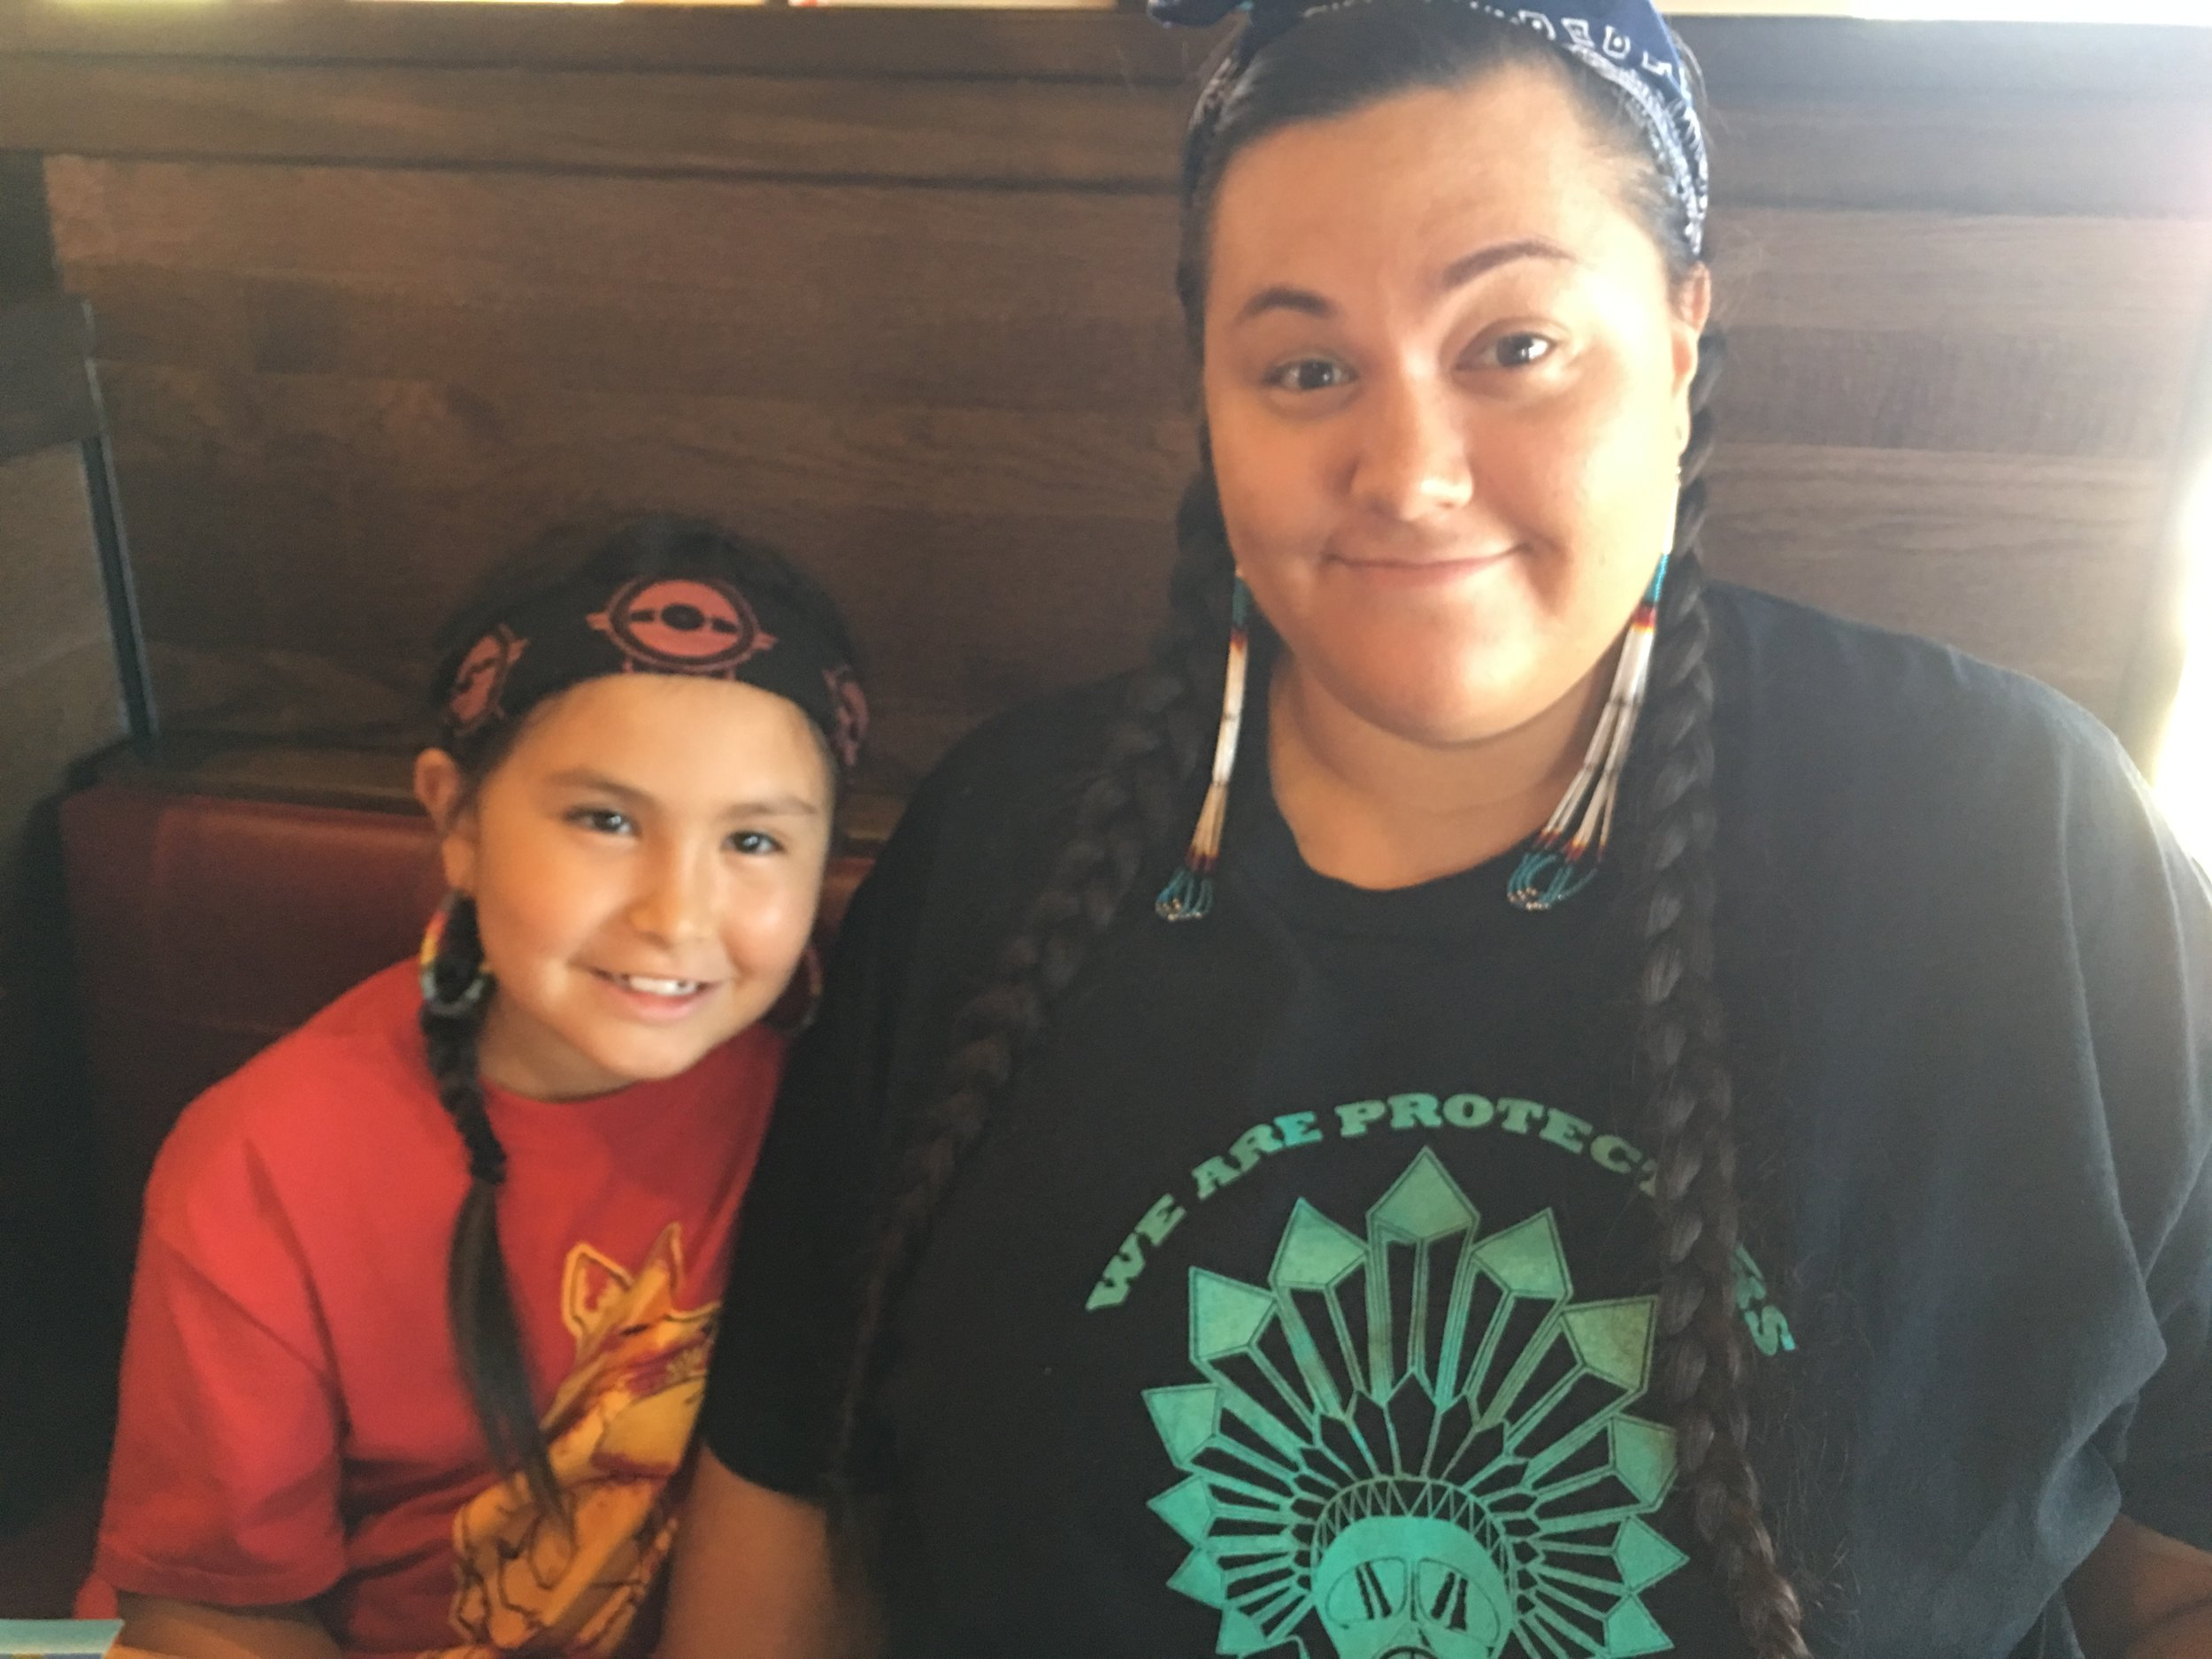 """Taté Walker on raising her daughter: """"It's my responsibility as her ina (Lakota for """"mother"""") and as a compassionate adult to ensure she's provided with Indigenous and other marginalized histories and perspectives her teachers, history books, mass media, and pop culture misrepresent or erase entirely."""""""